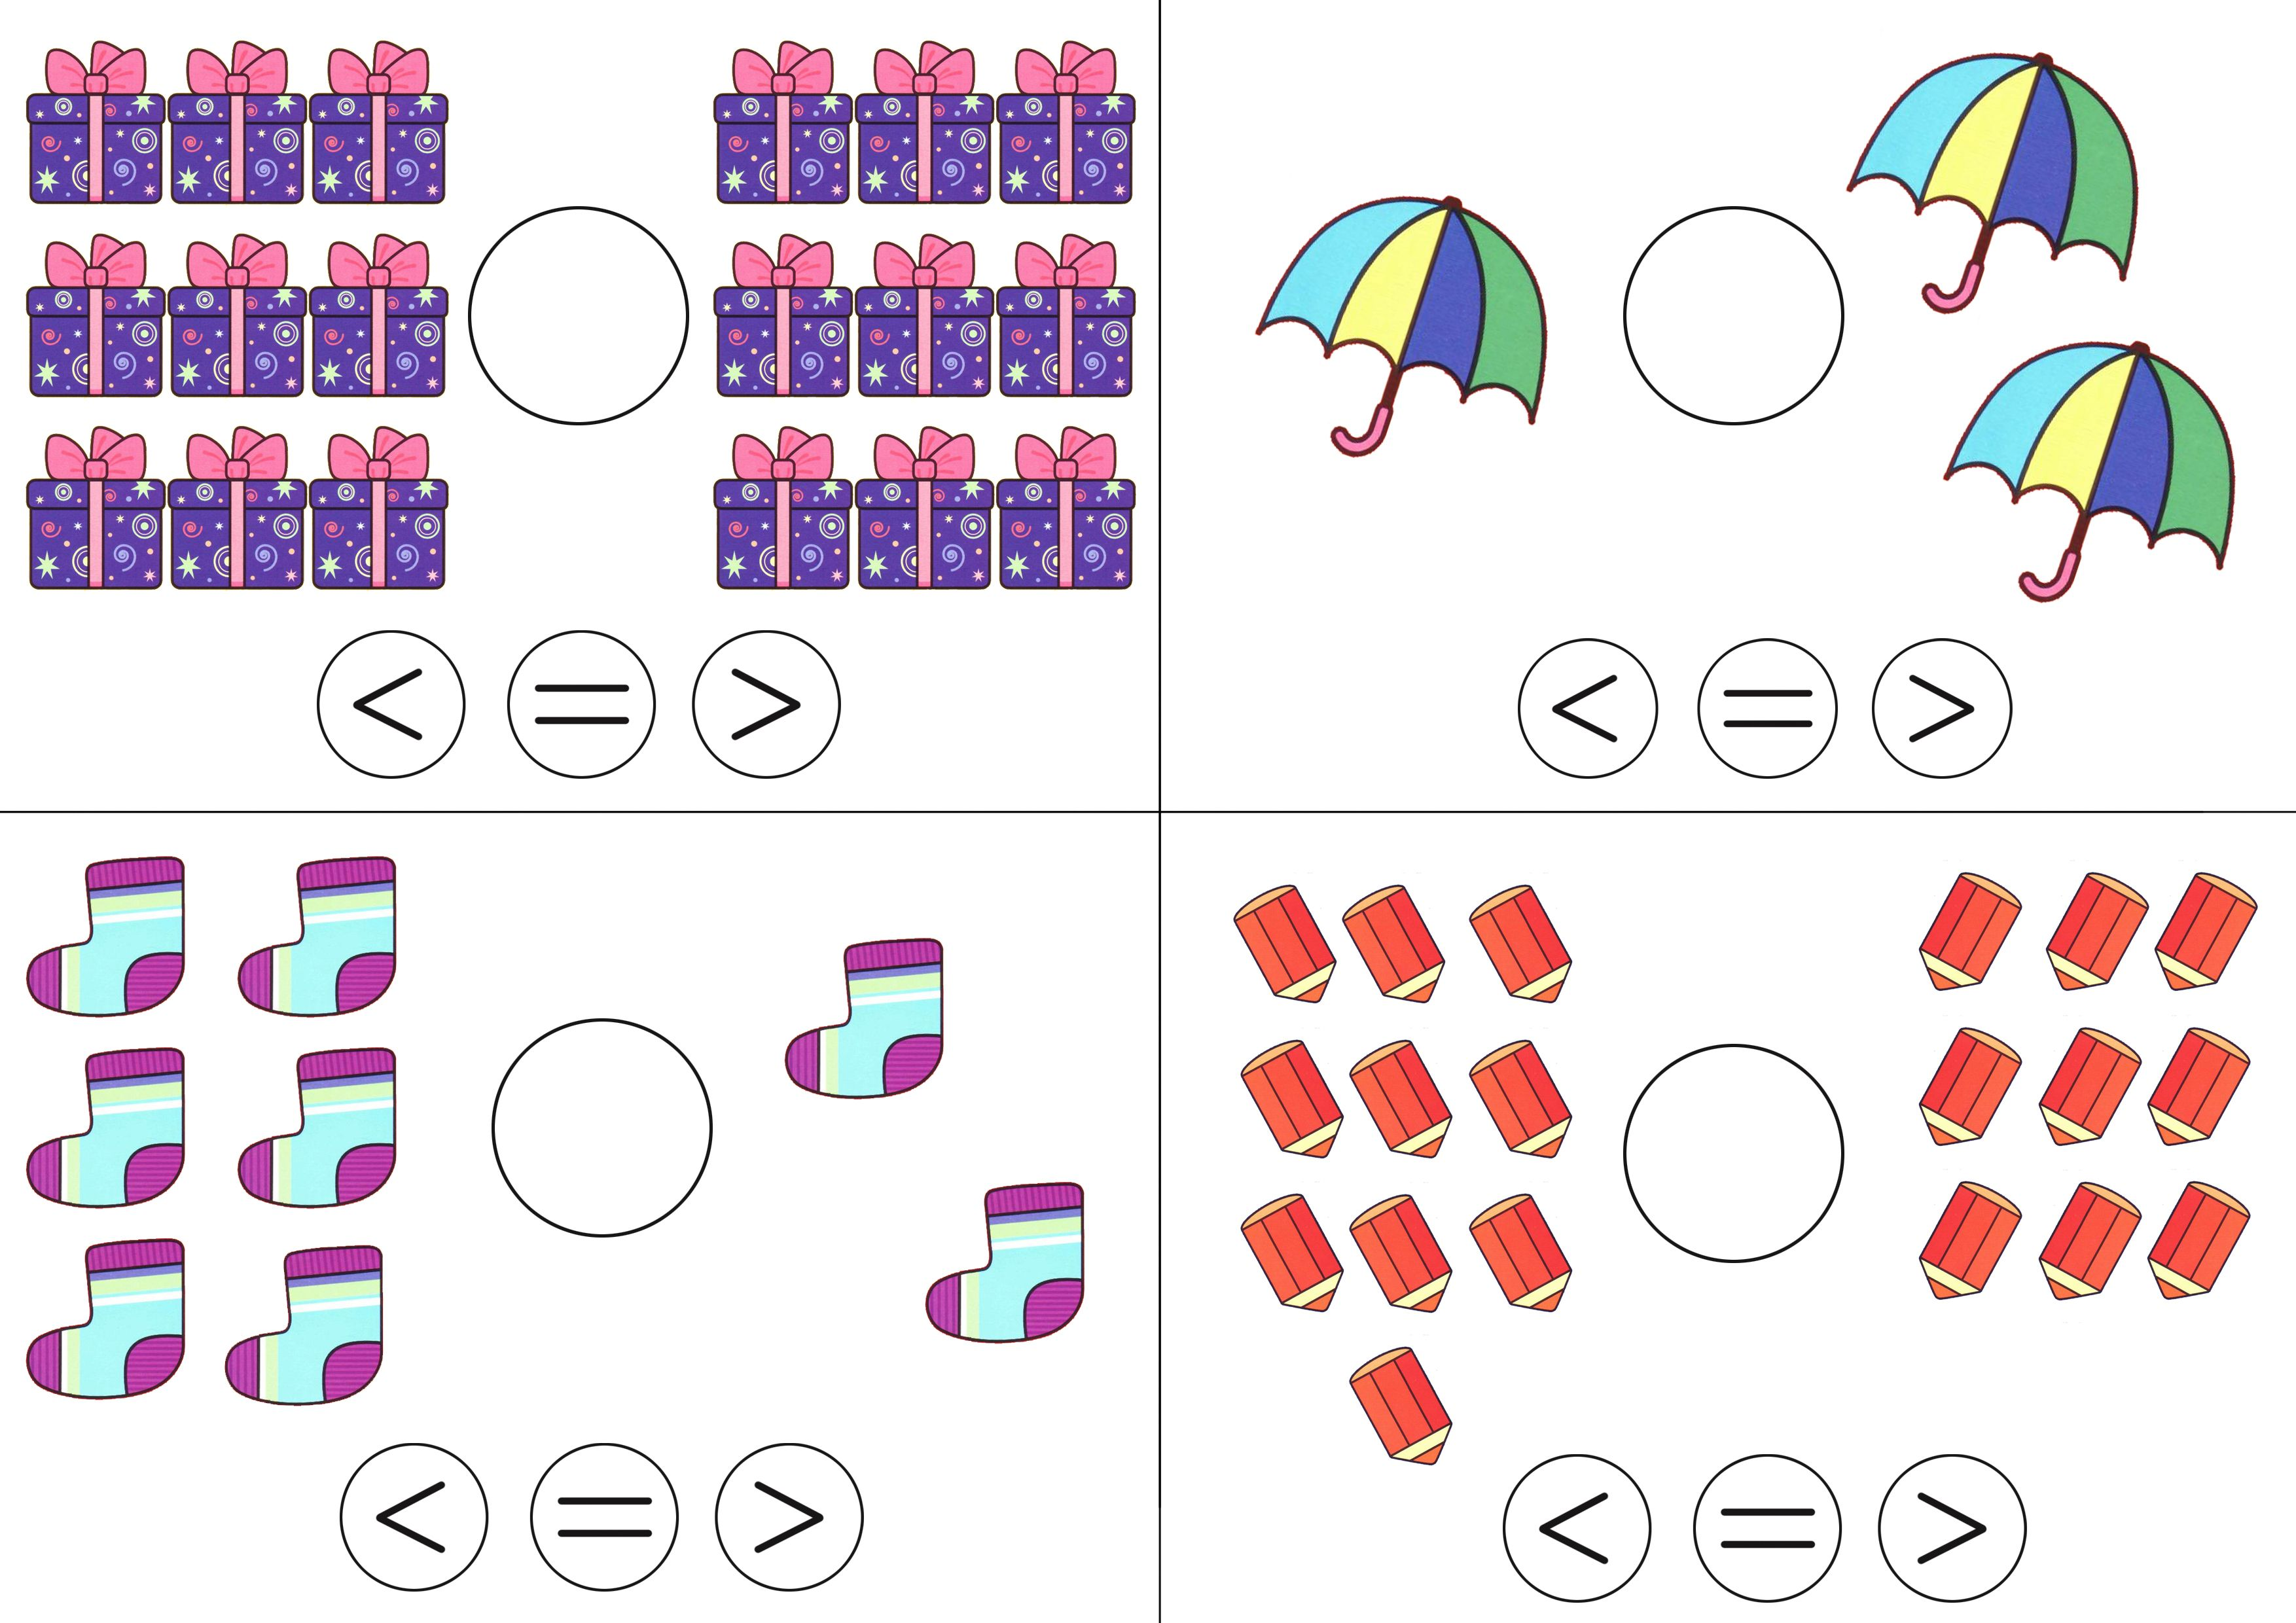 Pin By Yayam Nyny On Maths Preschool Maternelle Primaire